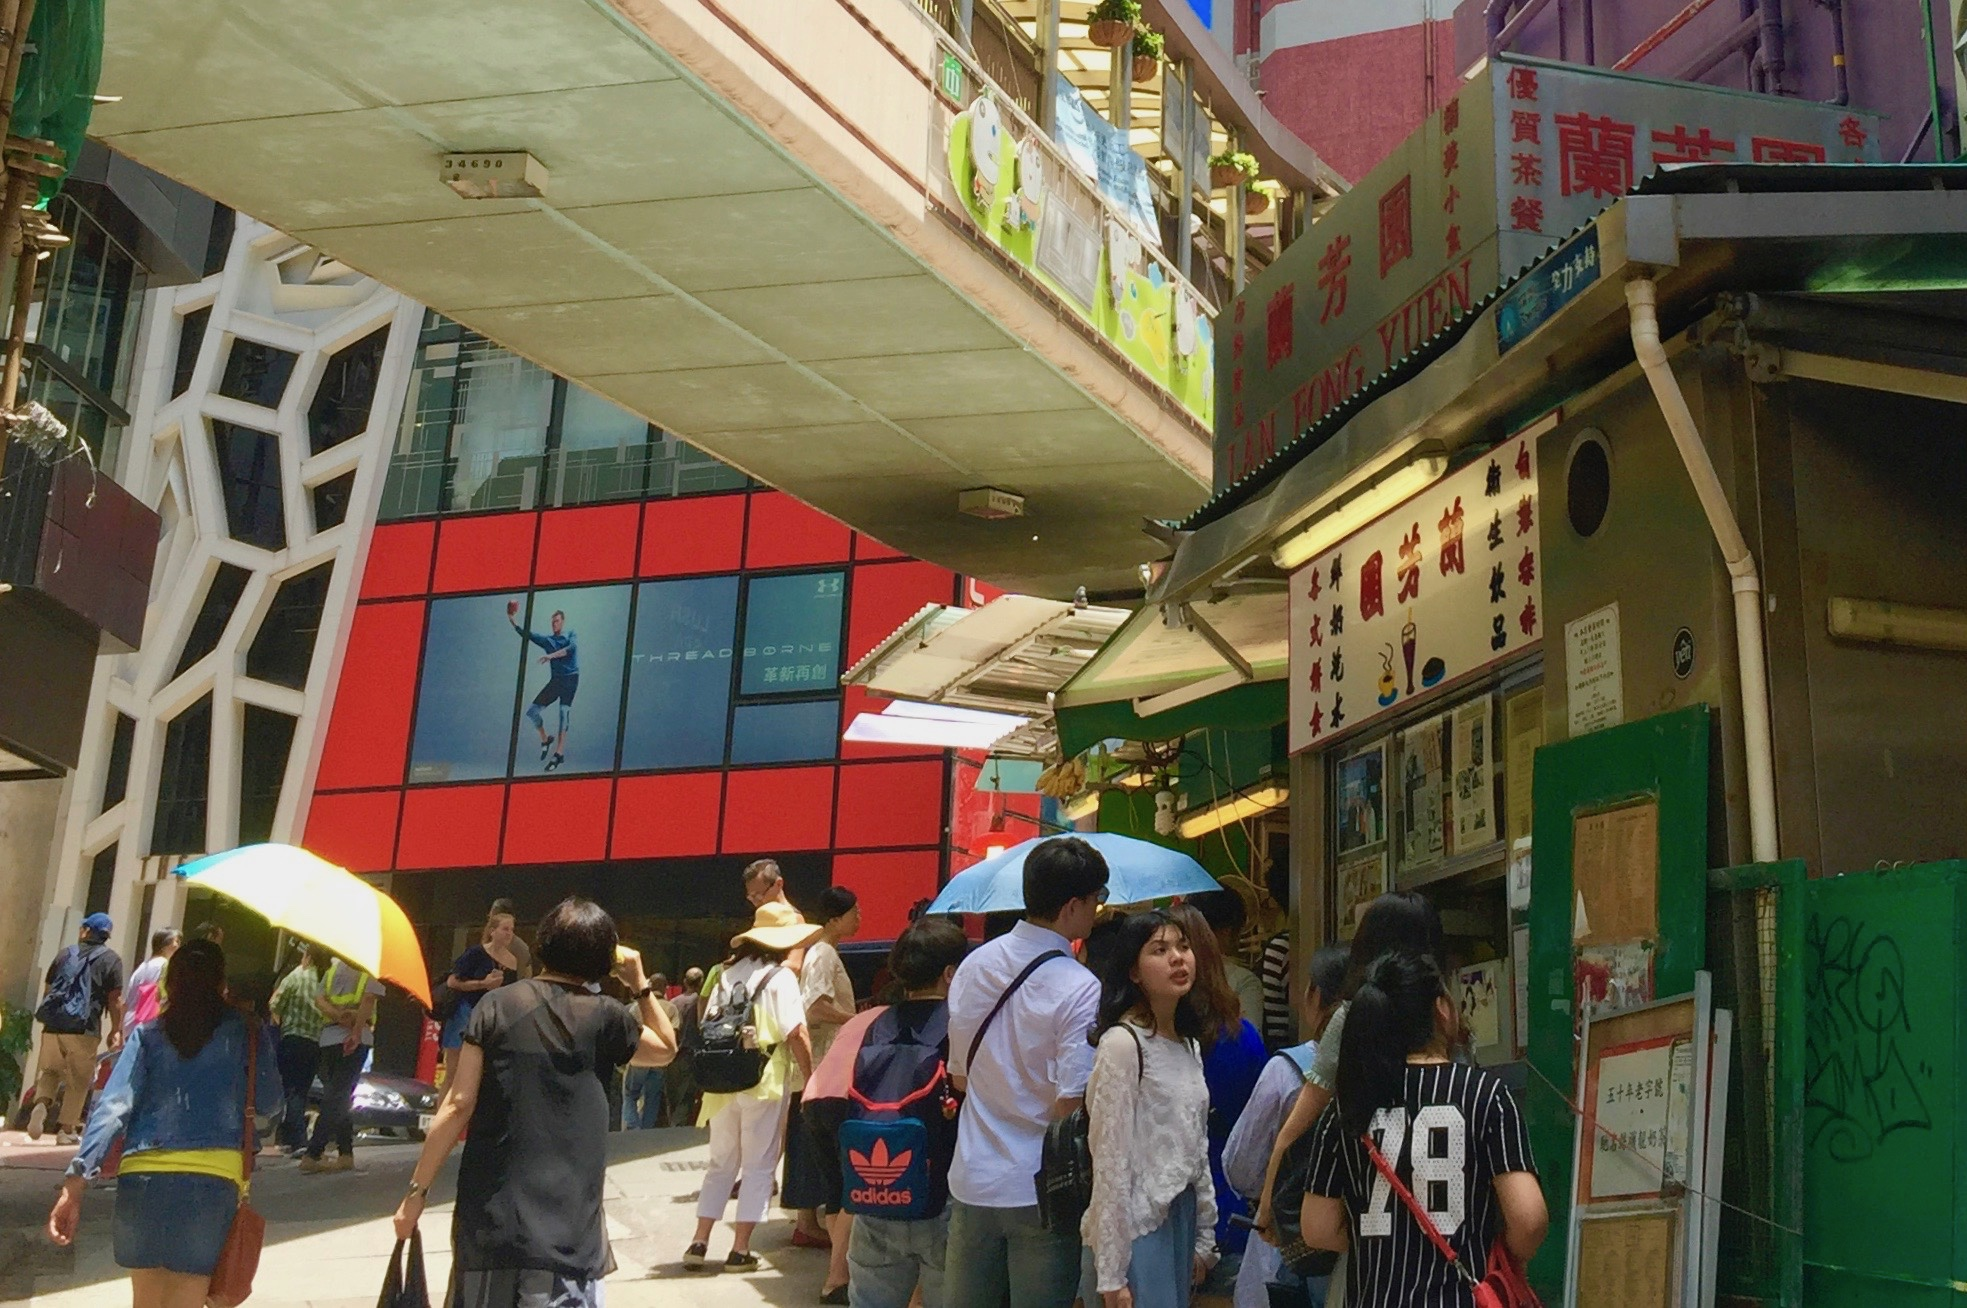 Hong Kong Central F&B Shop for Lease on Gage Street